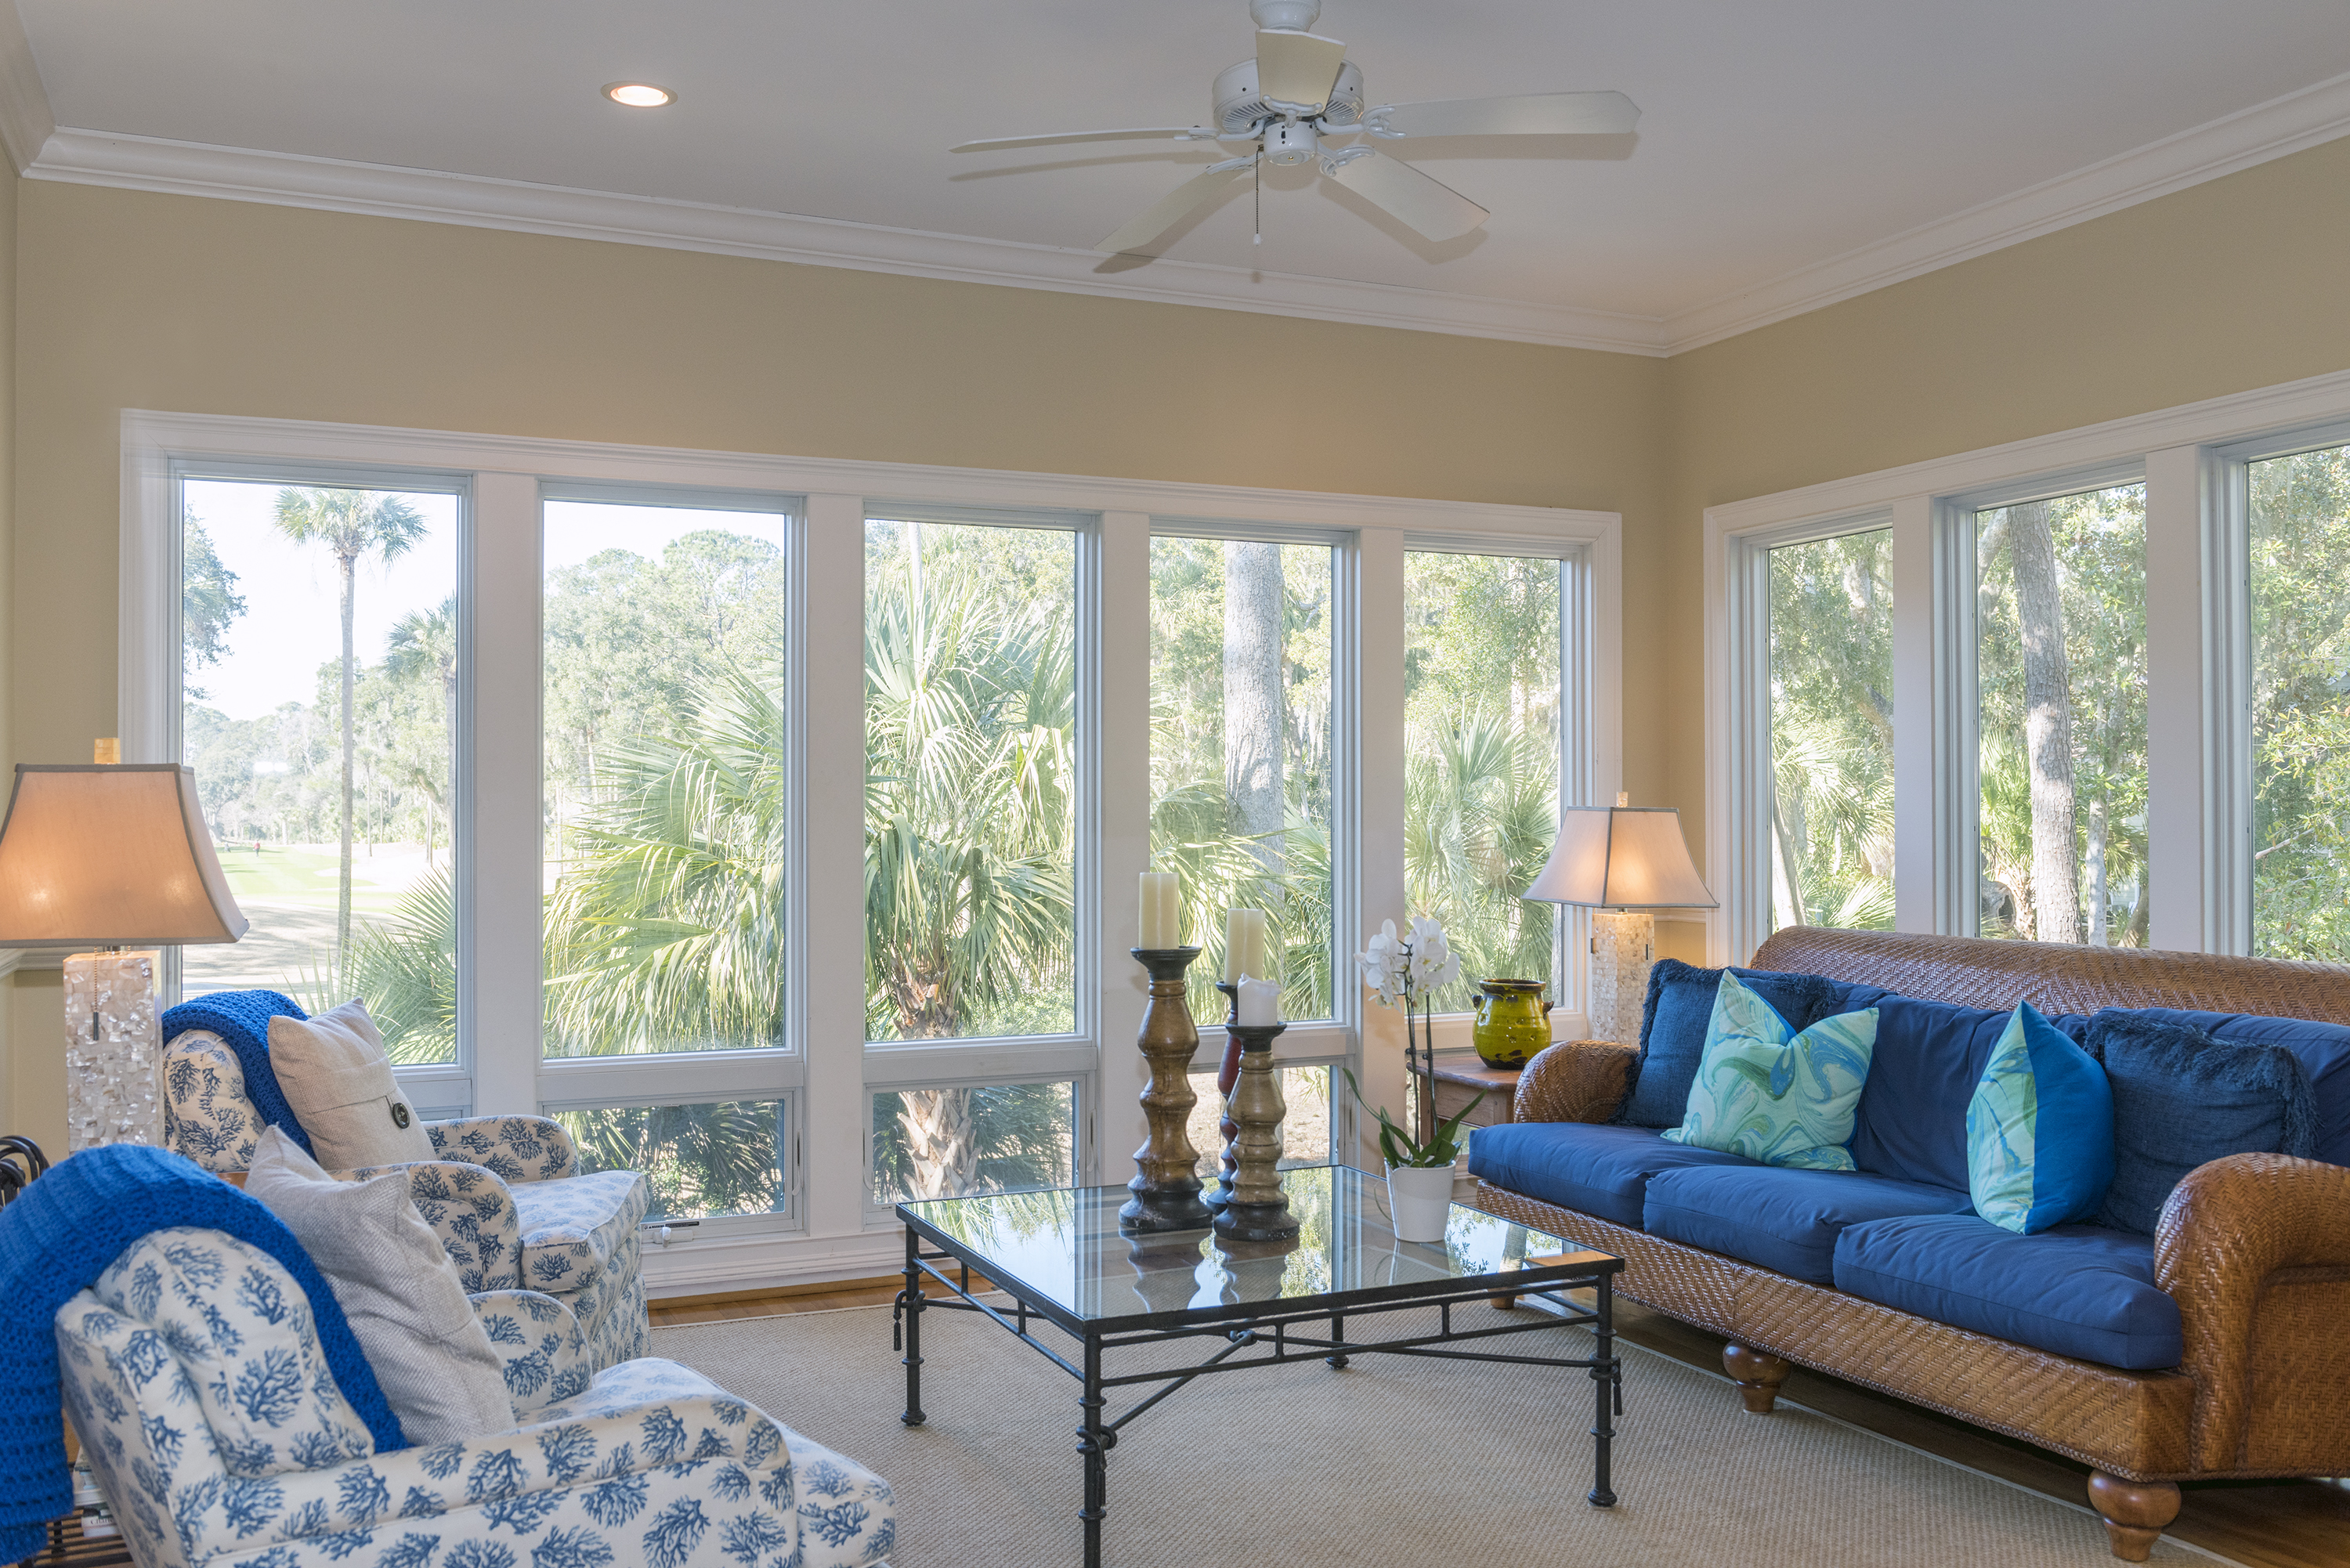 The ceiling to floor windows in the sun room offer beautiful views of the outdoor landscaping.